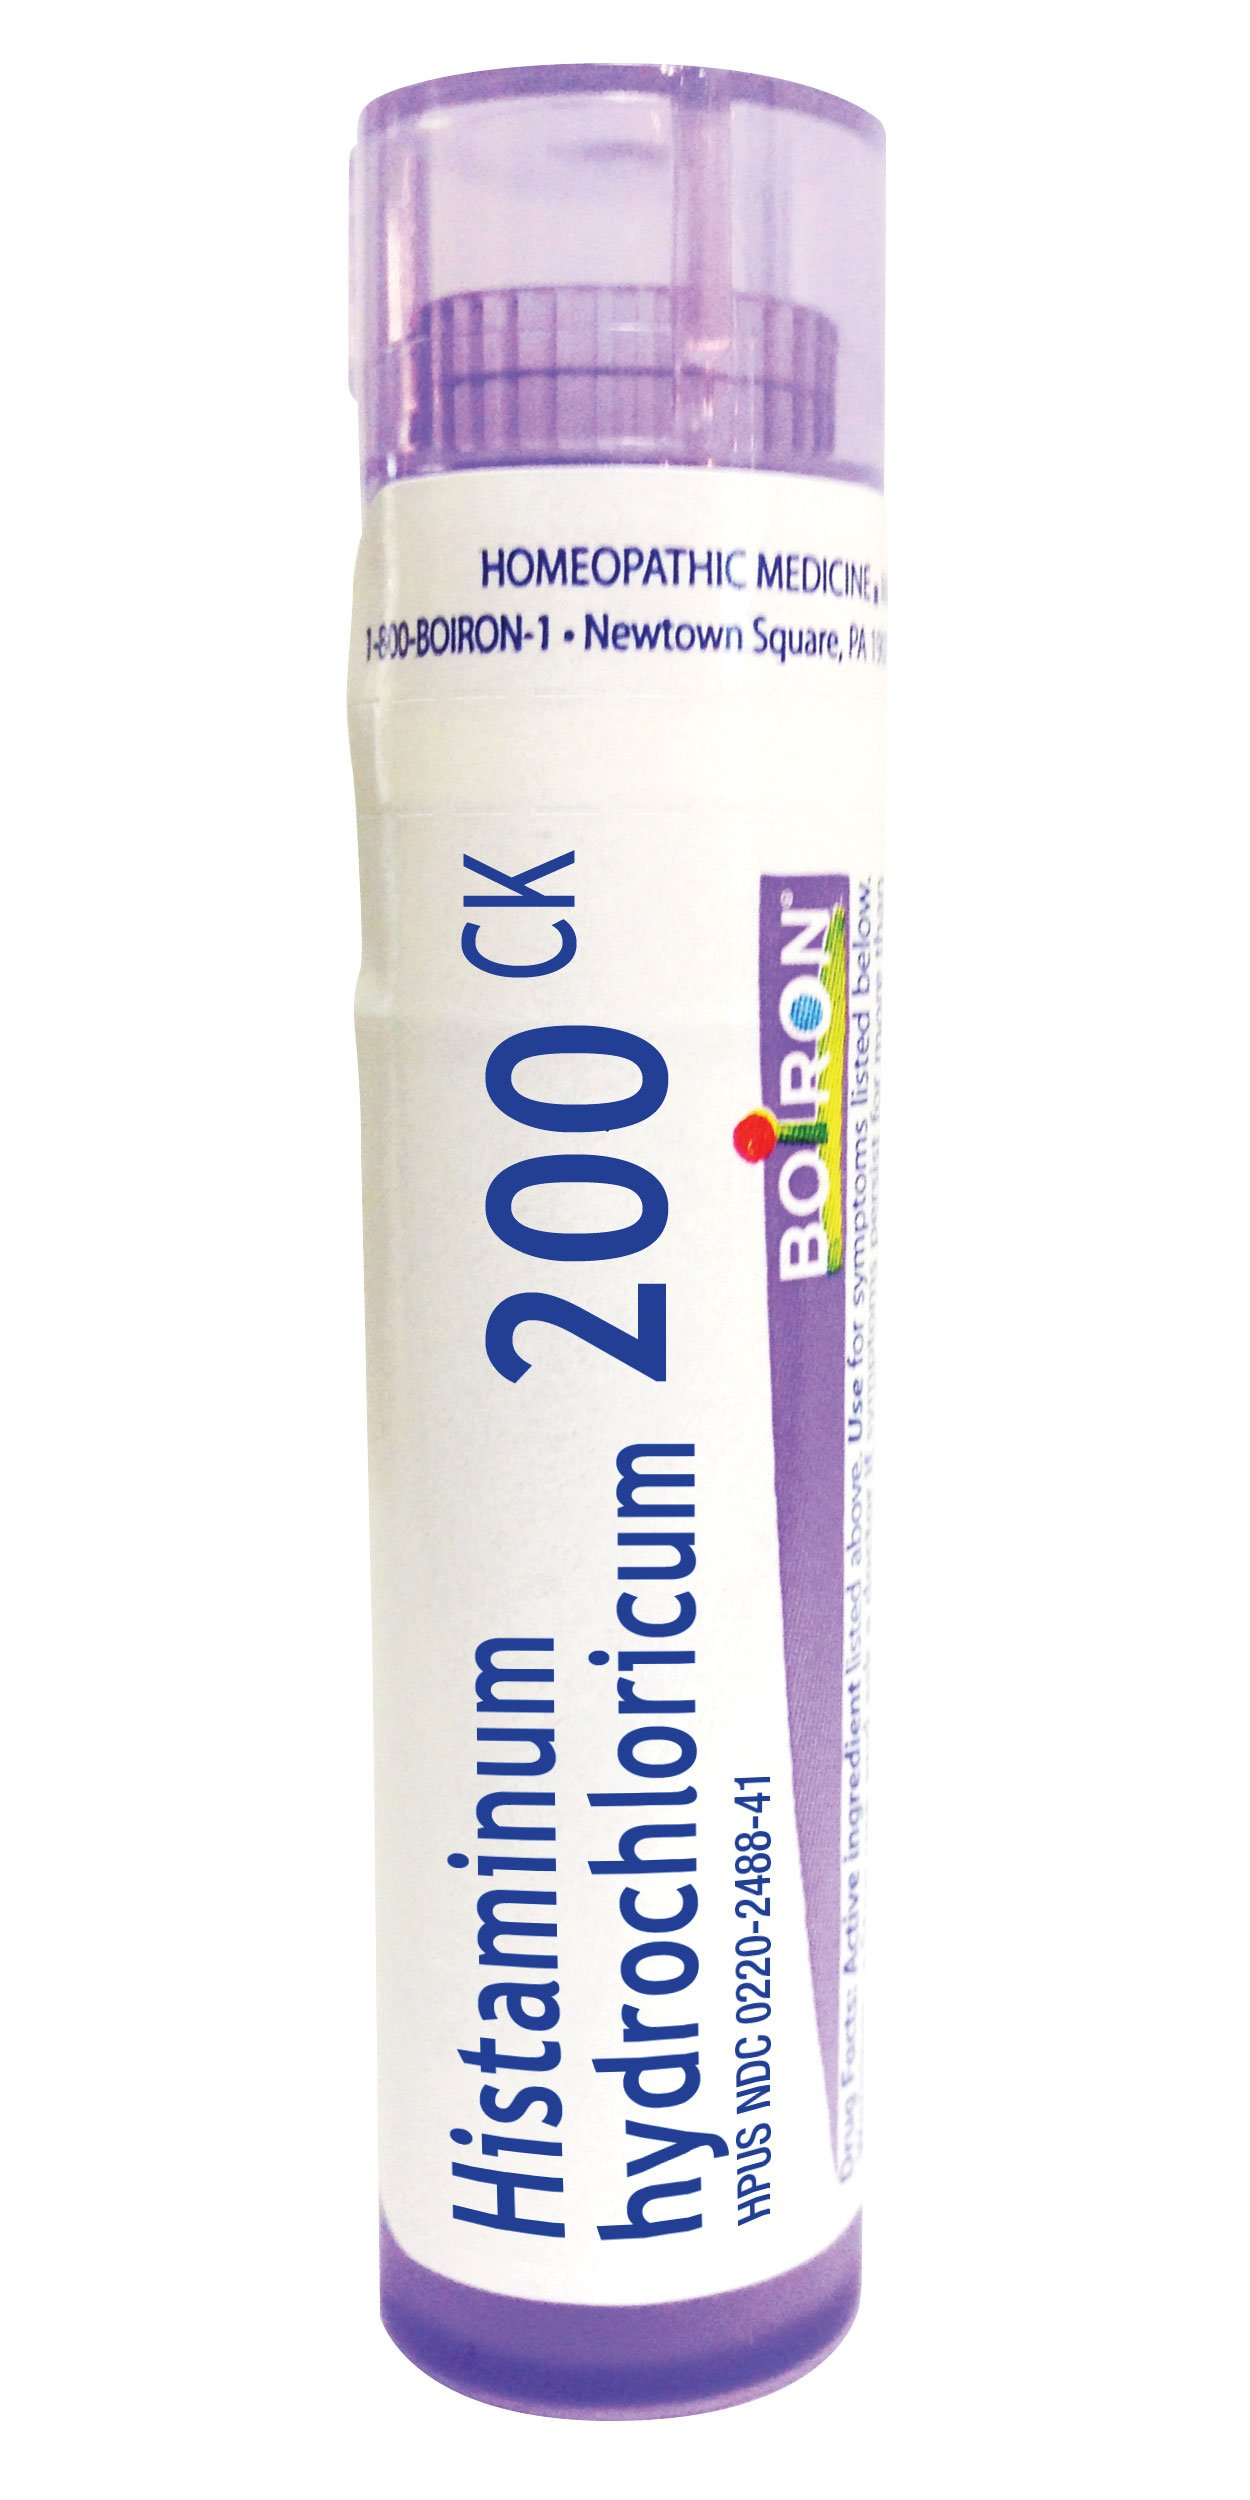 Boiron Histaminum Hydrochloricum 200C, 80 Pellets, Homeopathic Medicine for Allergy Relief